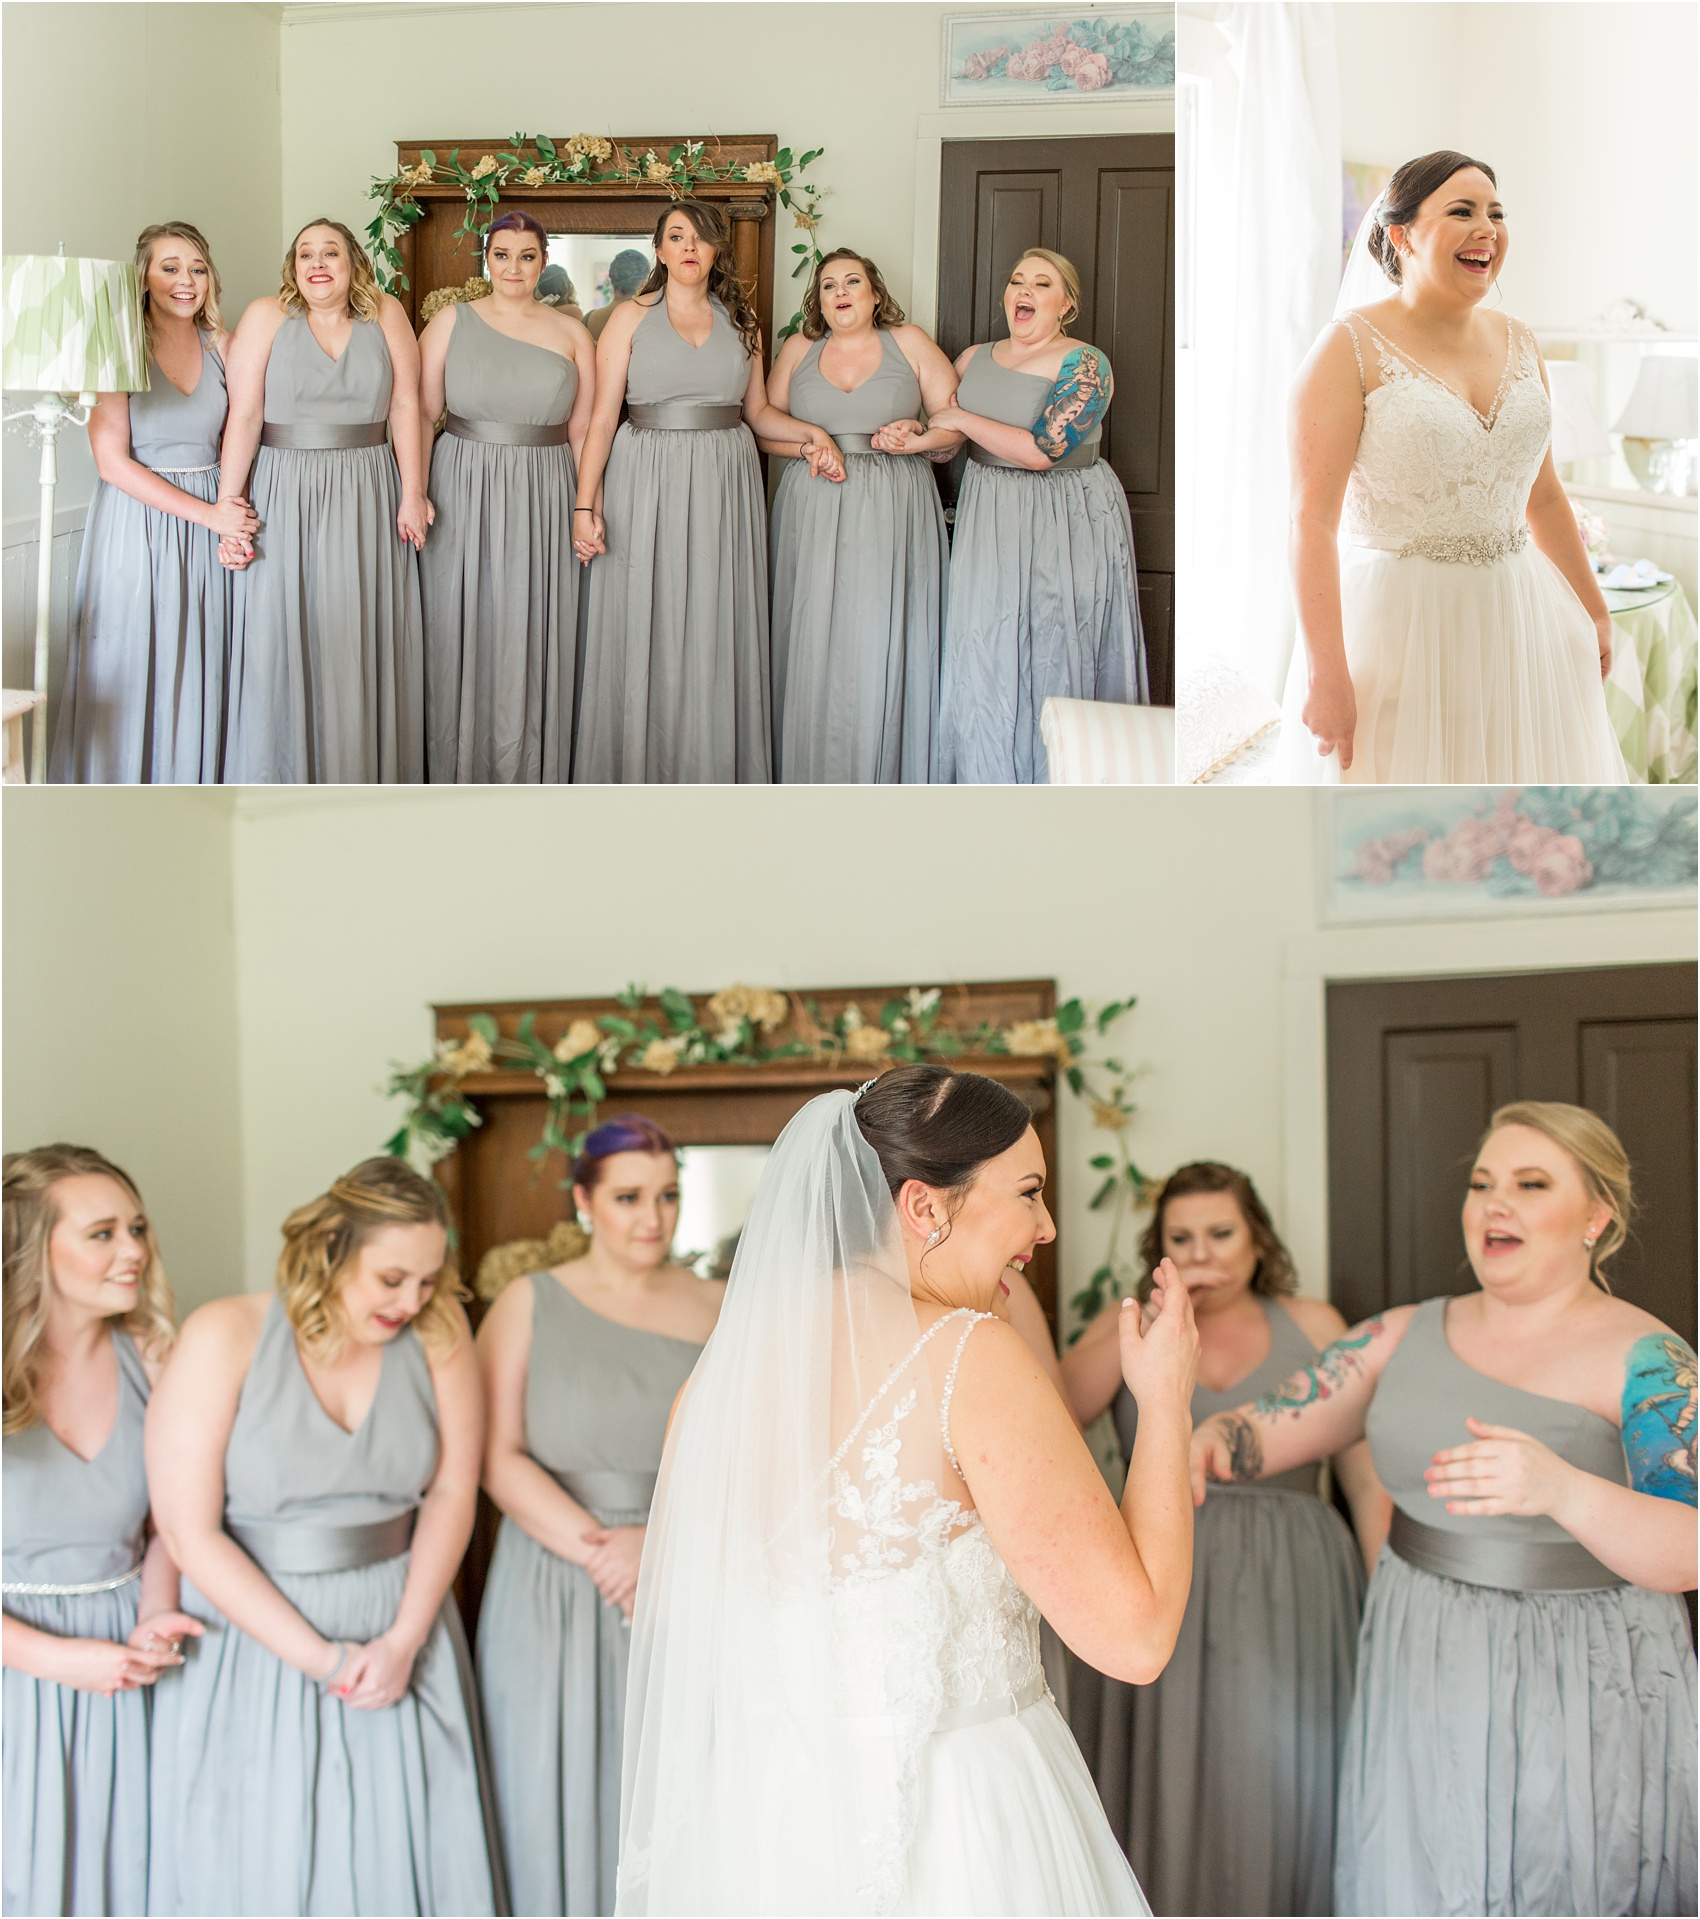 Savannah Eve Photography- Newton Wedding- Blog-17.jpg